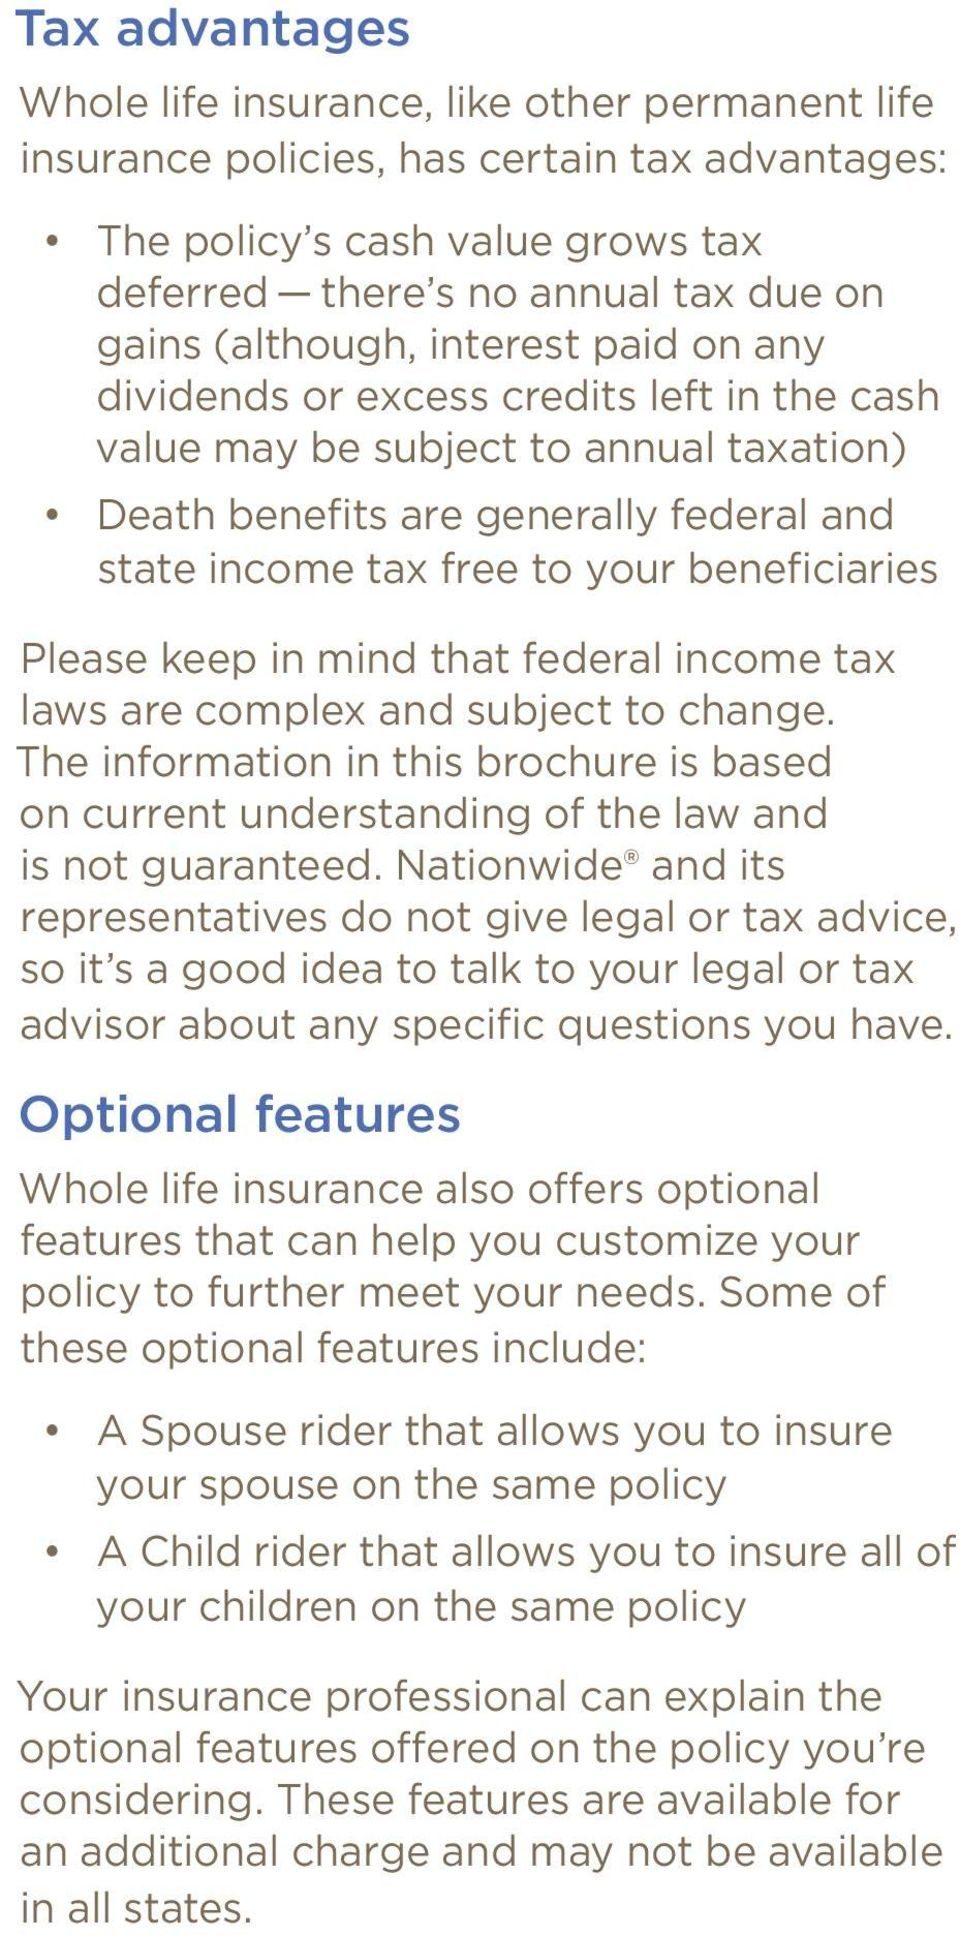 keep in mind that federal income tax laws are complex and subject to change. The information in this brochure is based on current understanding of the law and is not guaranteed.